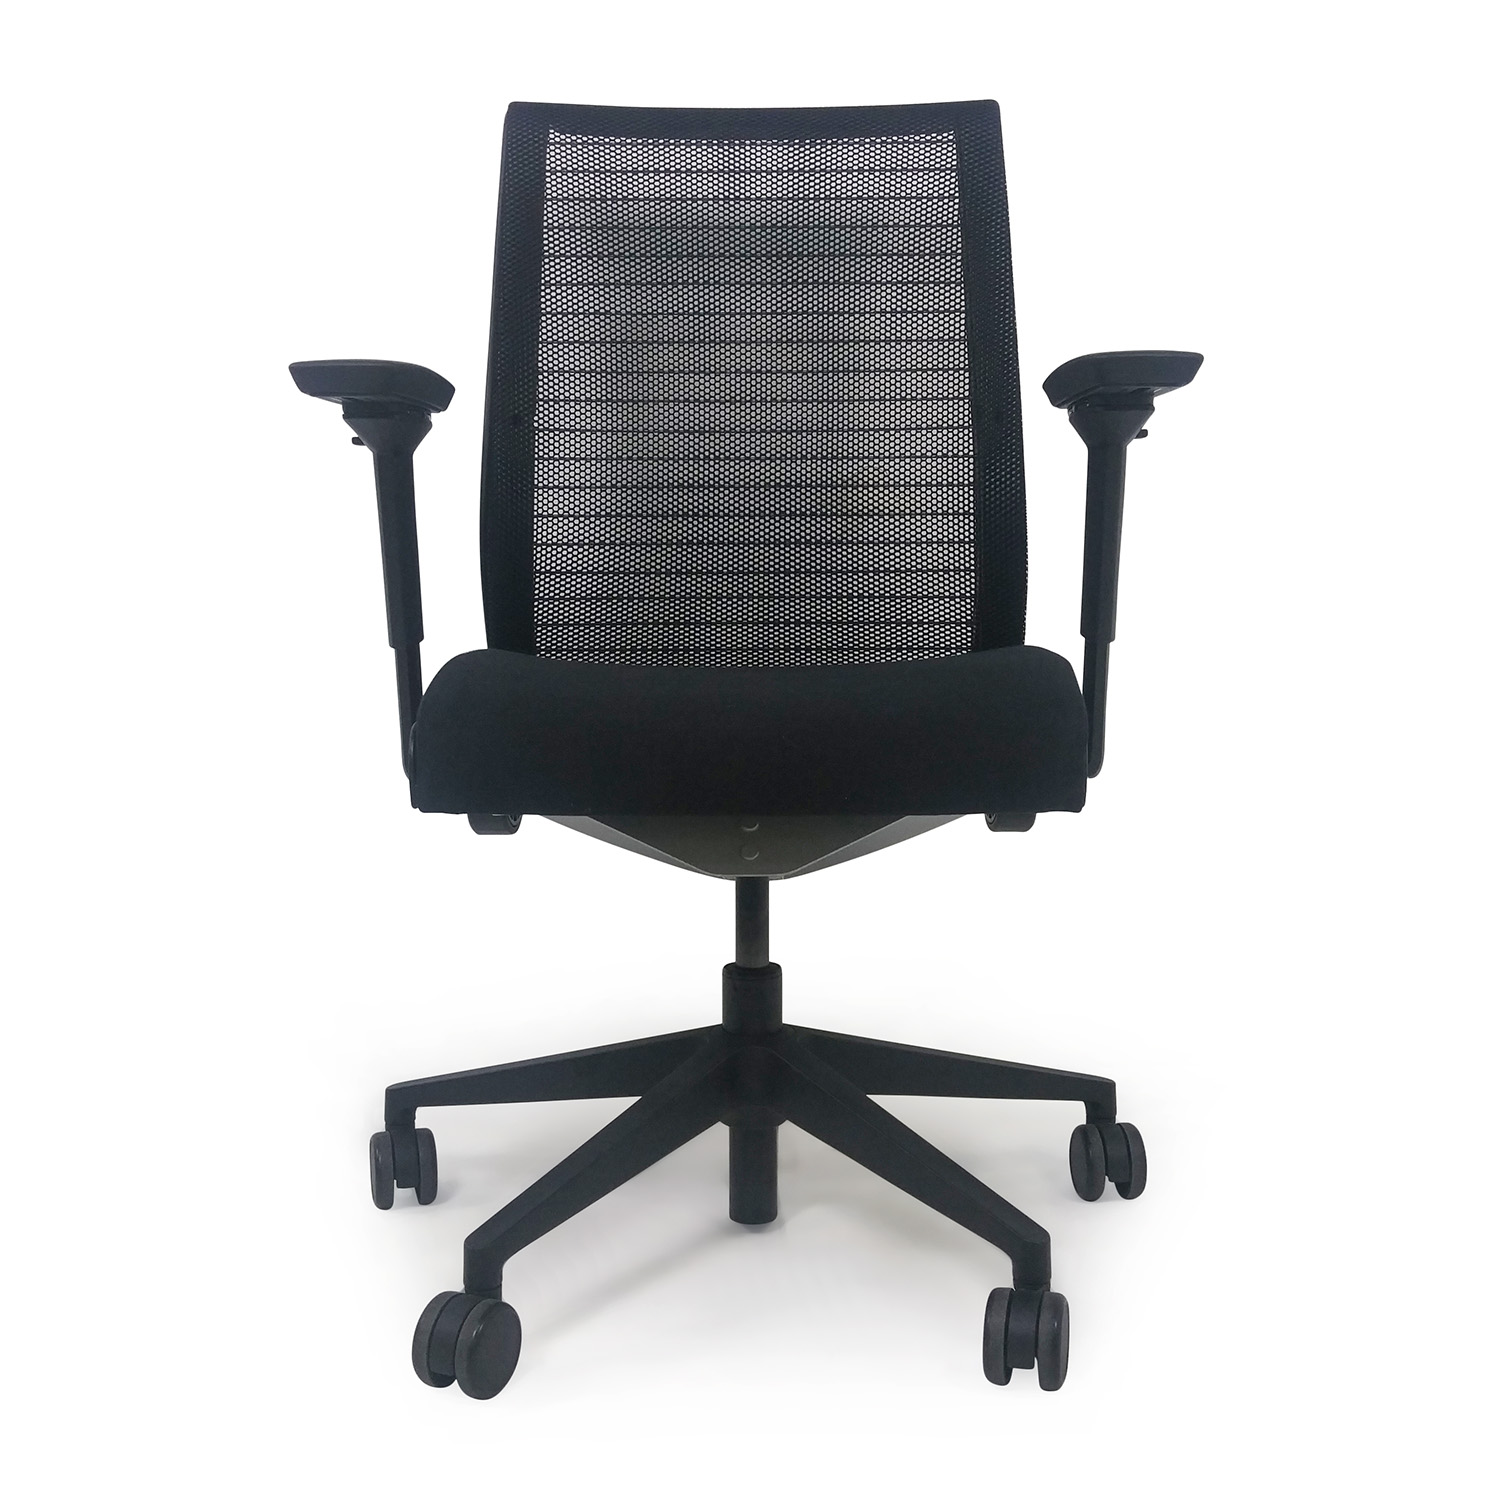 Steelcase Steelcase Modern Swivel Chair Home Office Chairs